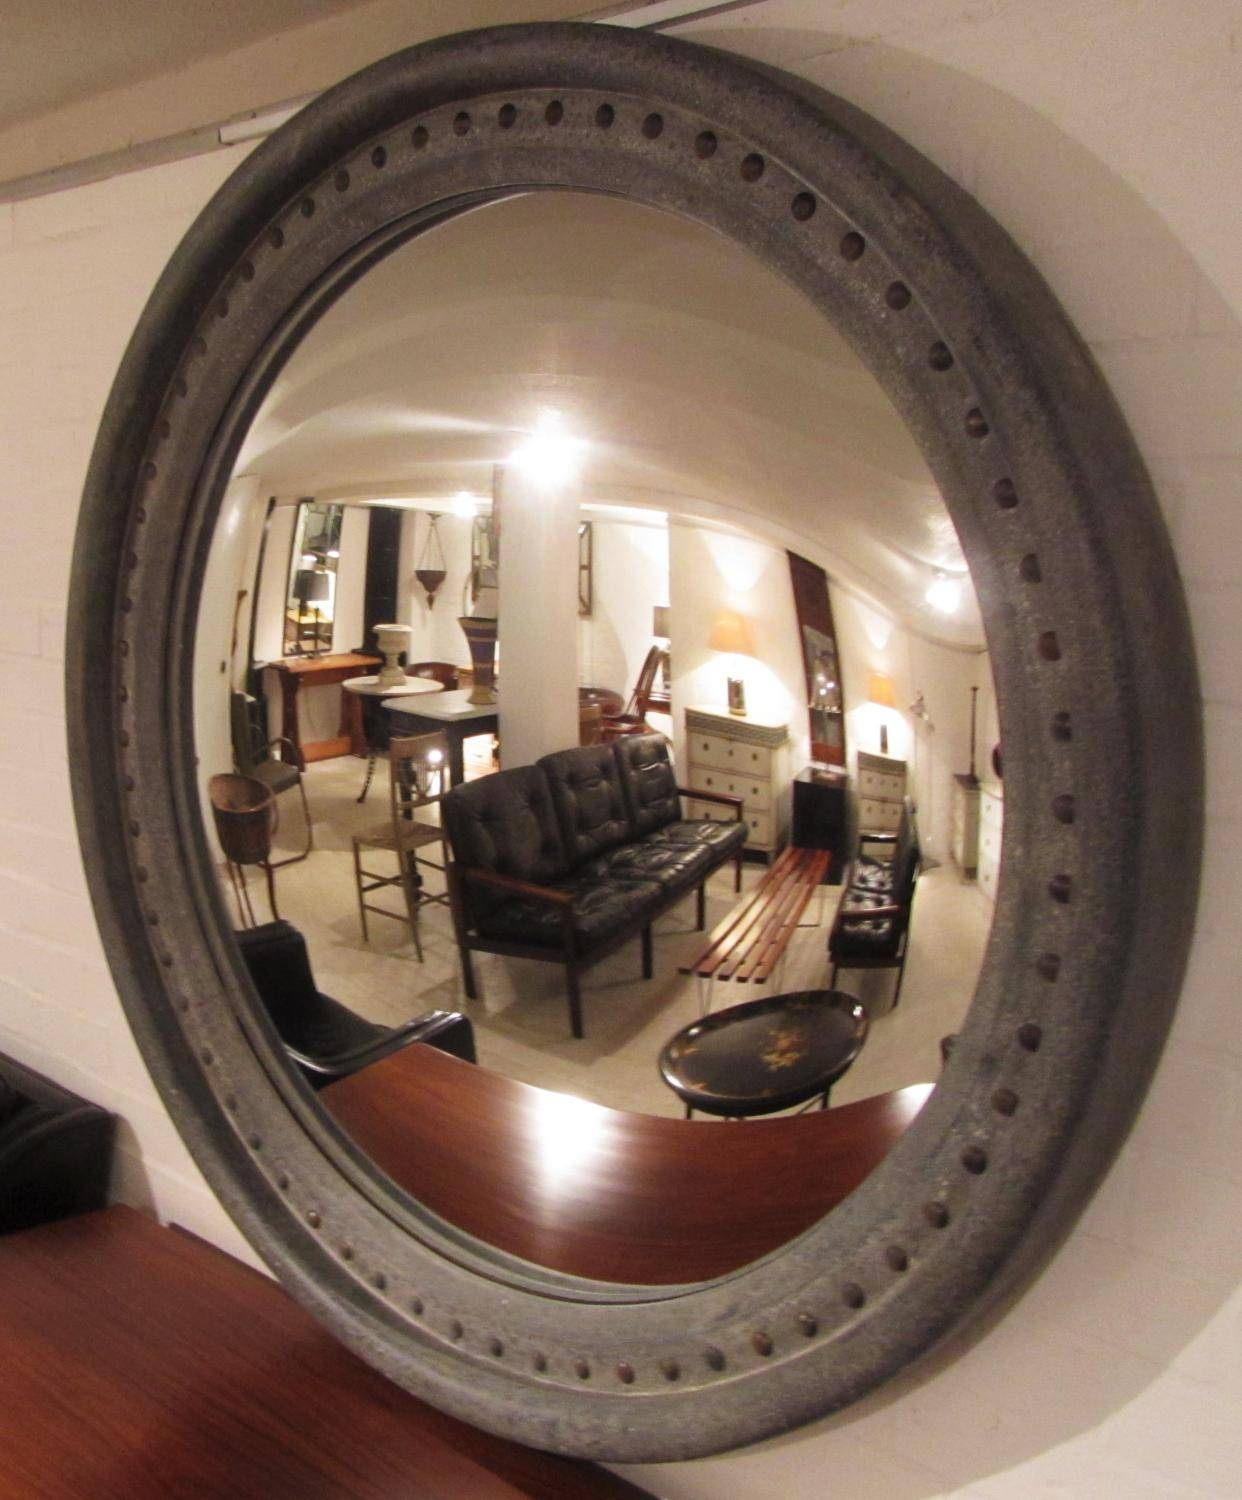 A Very Large Convex Mirror In Mirrors pertaining to Large Convex Mirrors (Image 3 of 25)